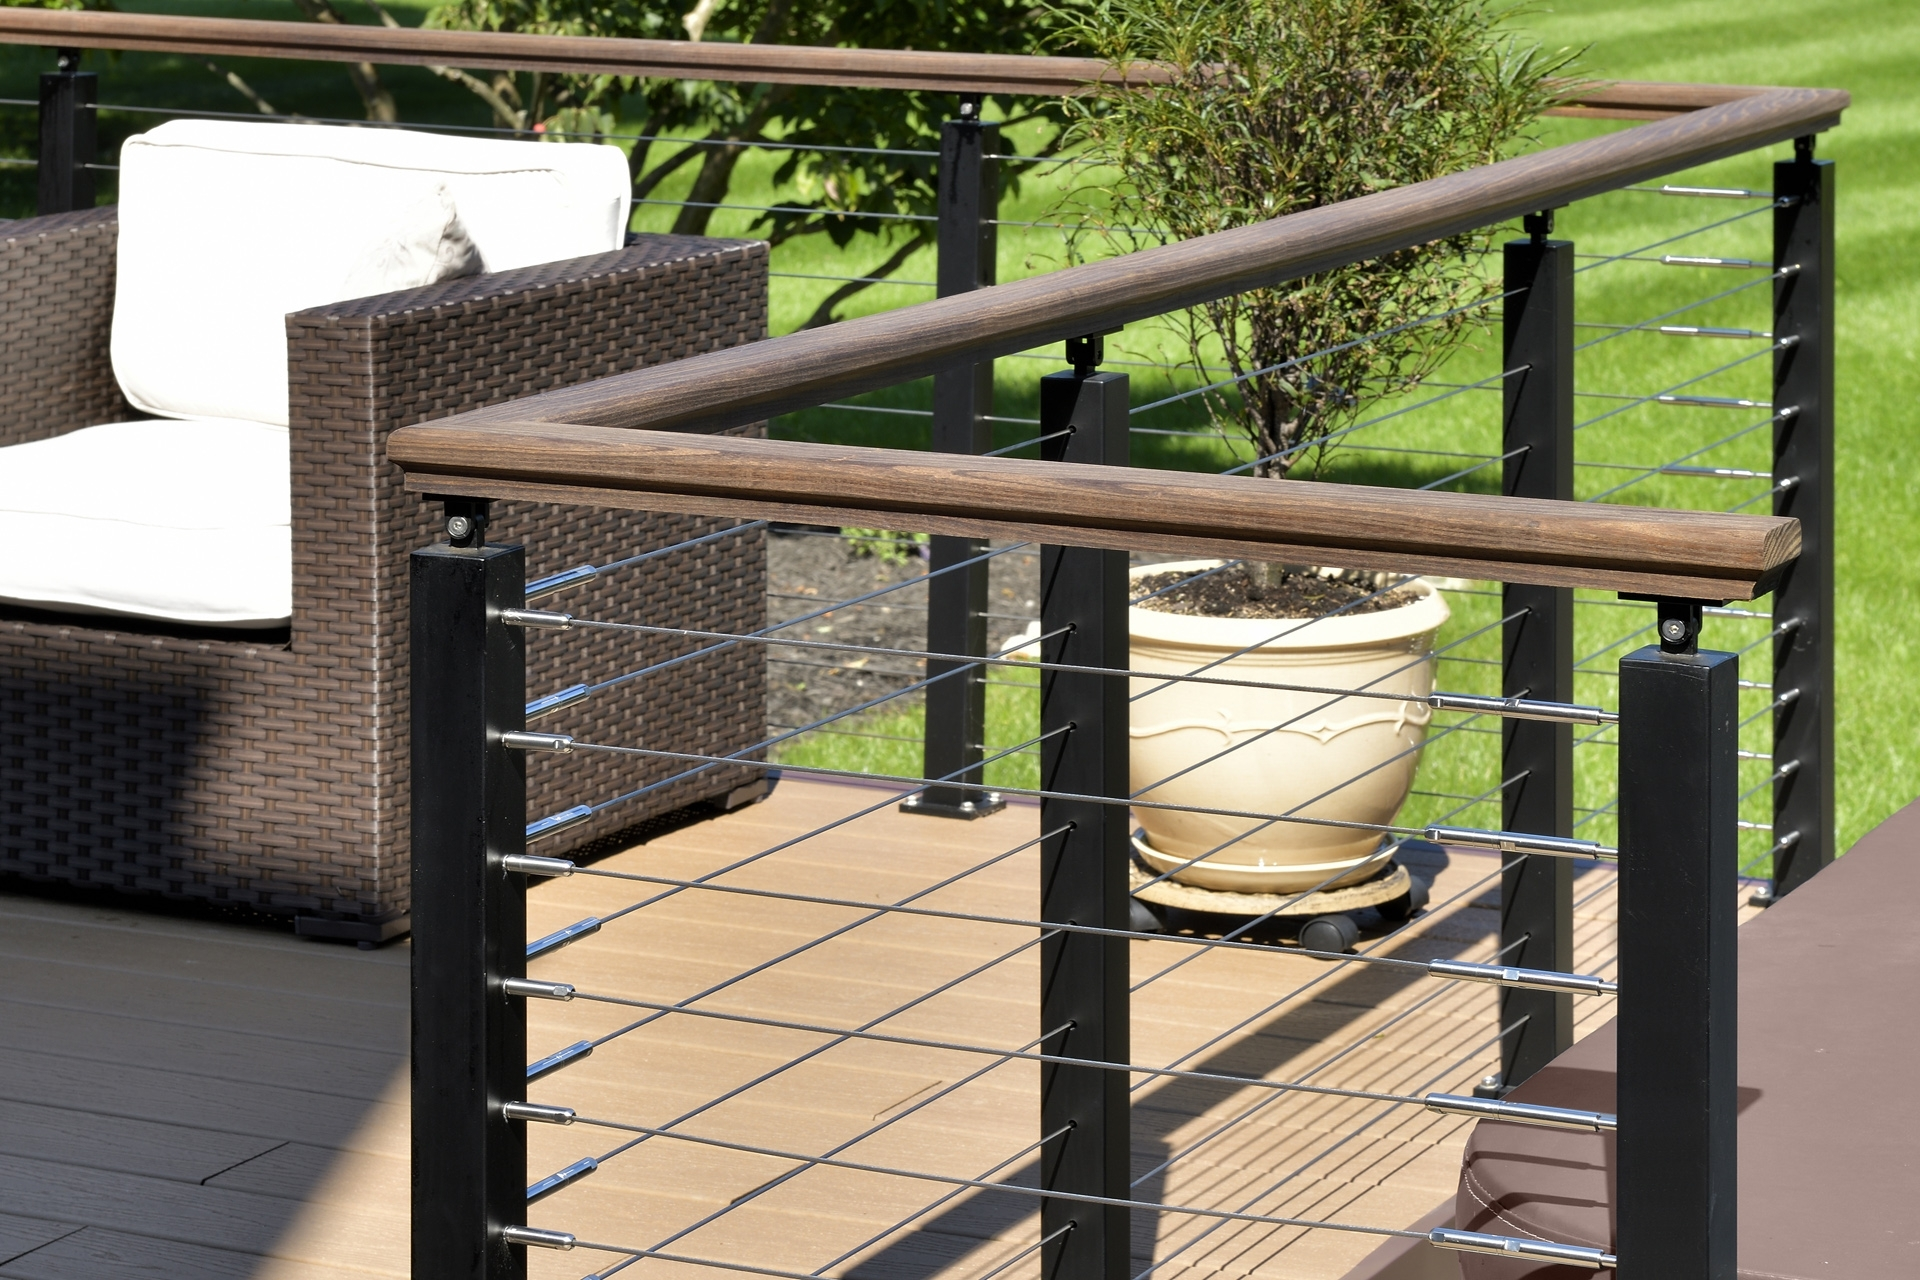 Stair Systems Stairs Stair Parts Newels Balusters And | Stairs And Railings Near Me | Stair Treads | Deck | Stair Parts | Iron Balusters | Stair Case